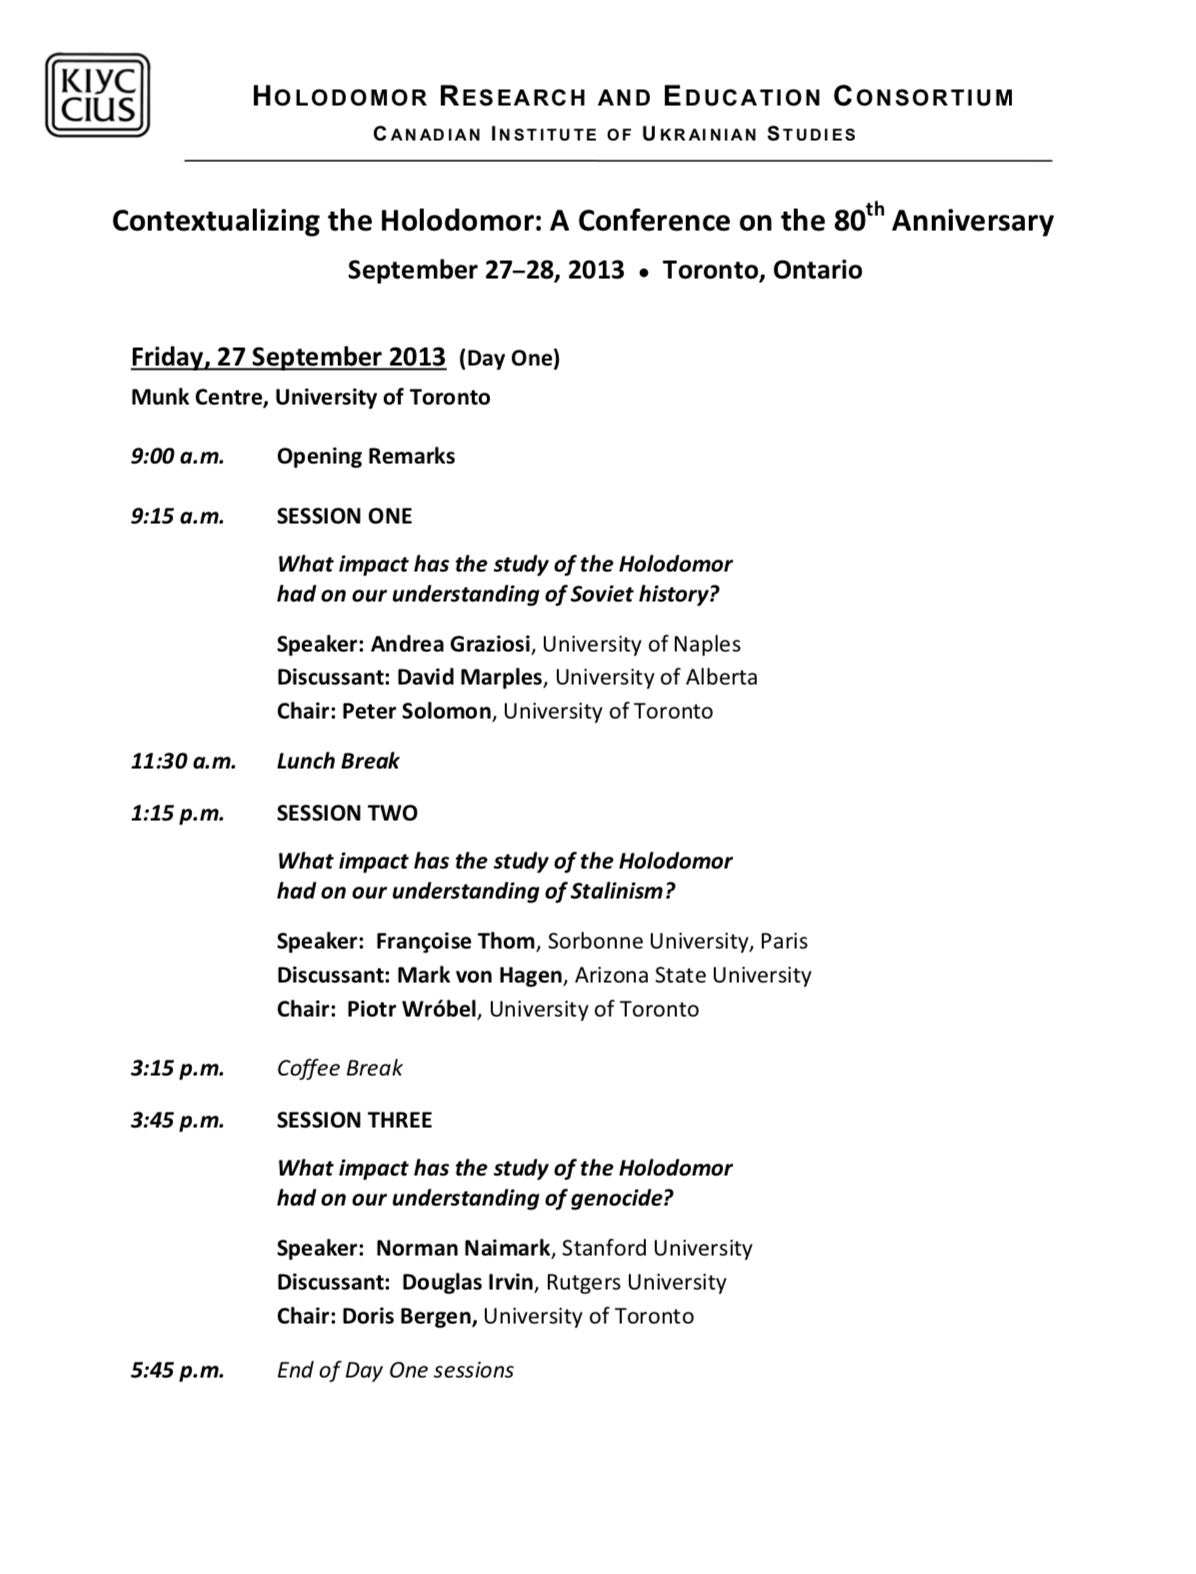 Contextualizing the Holodomor: A Conference on the 80th Anniversary of the 1932-1933 Famine in Ukraine